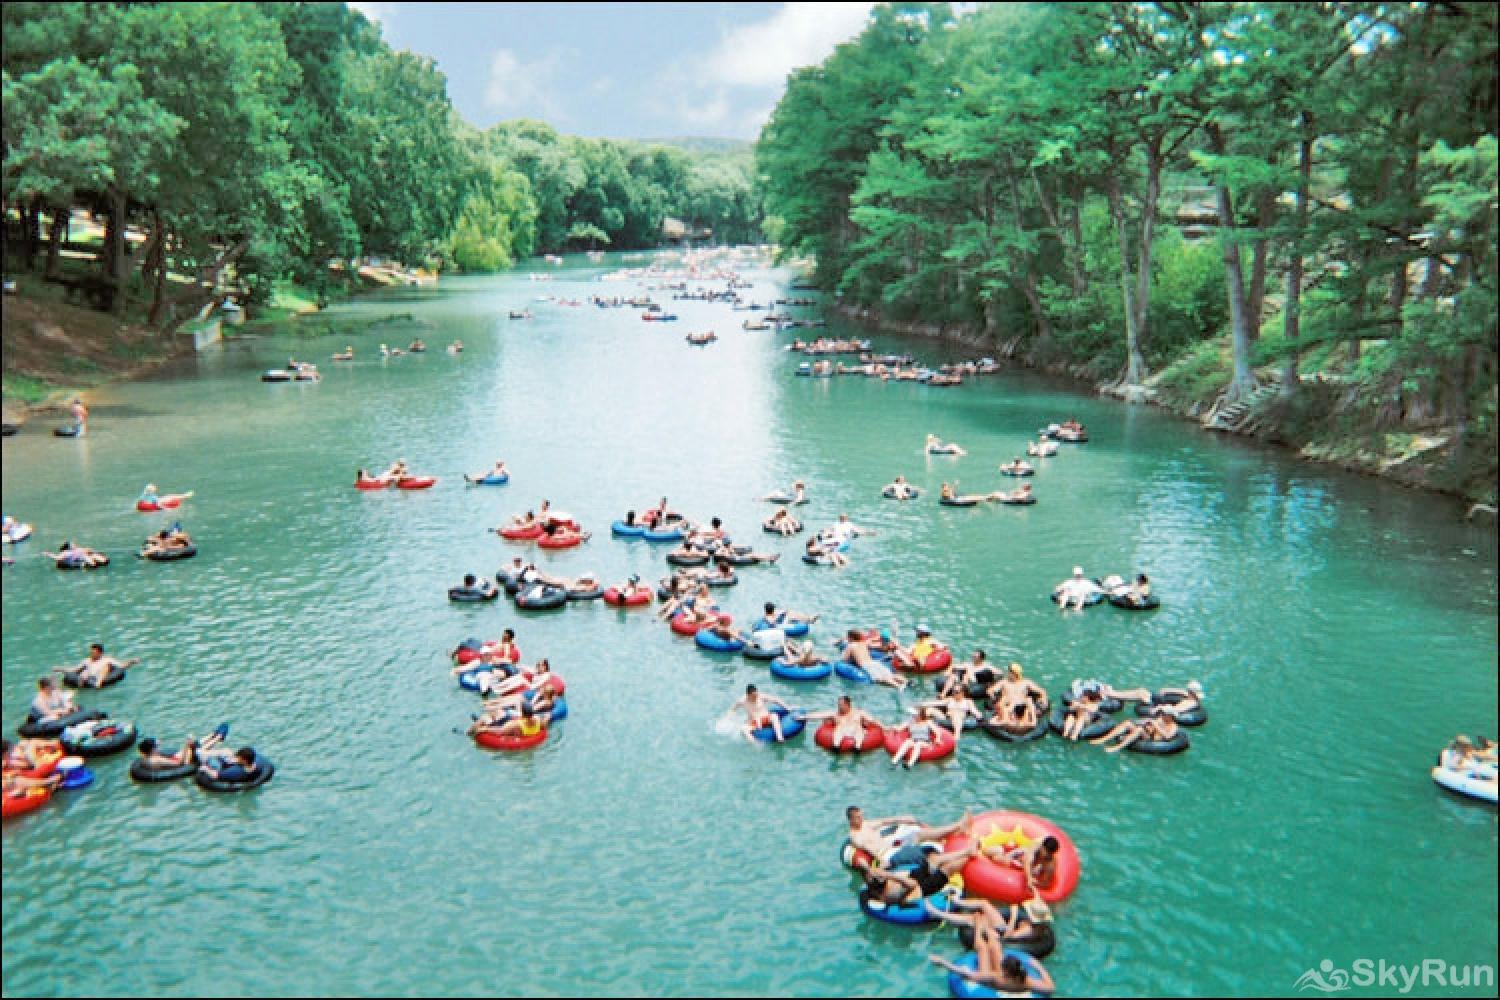 DUKE'S HORSESHOE HOUSE Popular Area for Tubing and Rafting